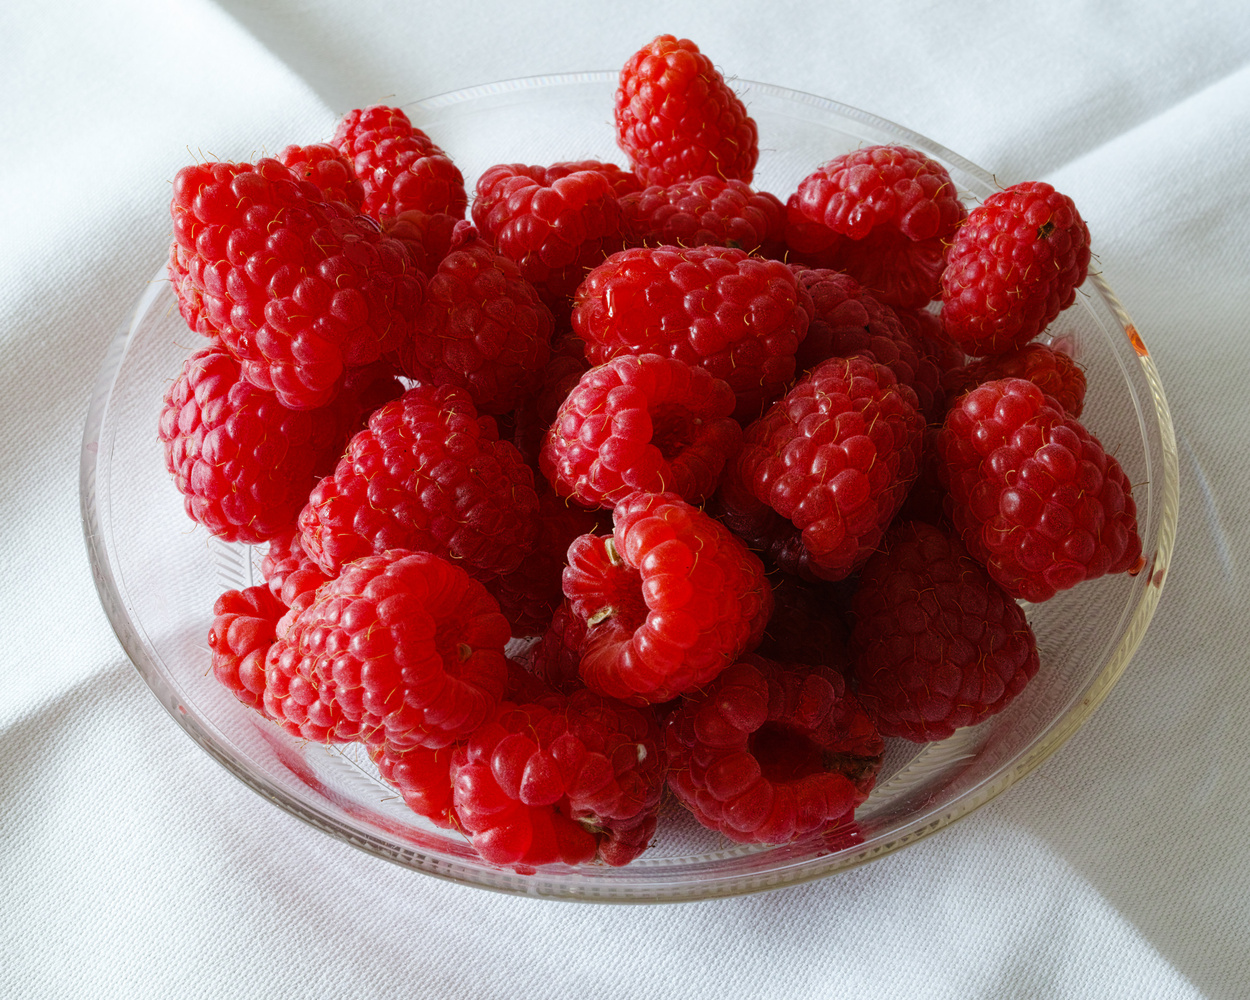 Raspberries by Milan Andrejevic